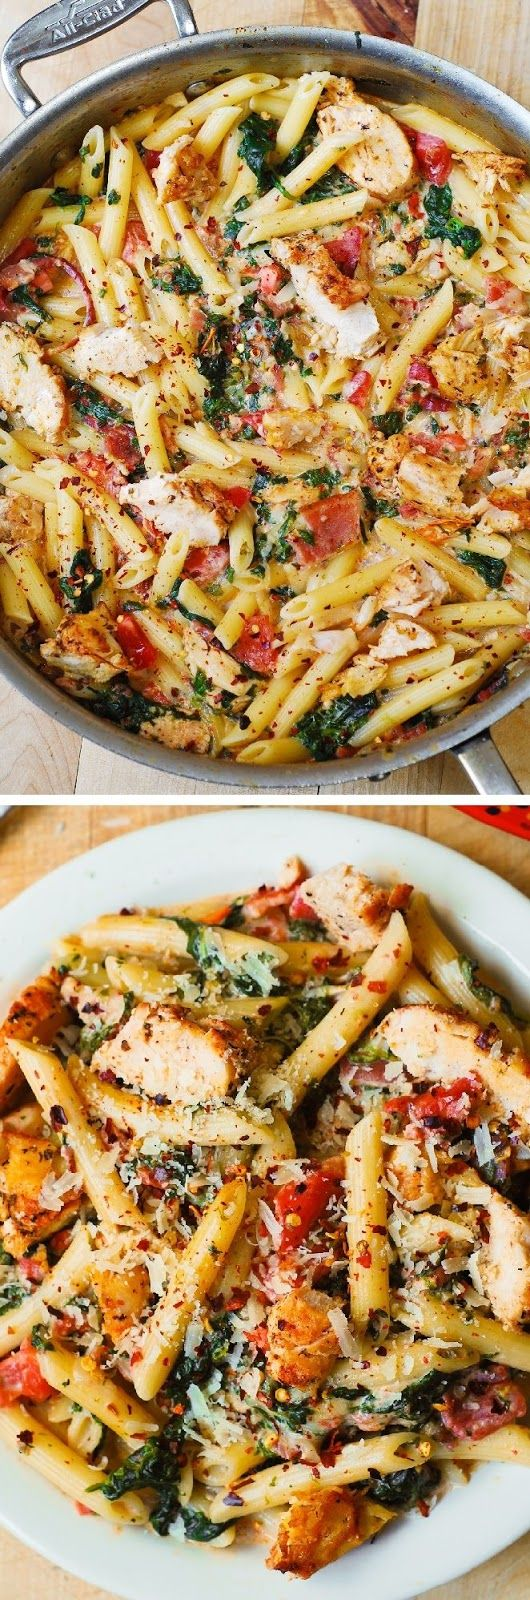 http://juliasalbum.com/2015/02/chicken-and-bacon-pasta-with-spinach-and-tomatoes-in-garlic-cream-sauce/